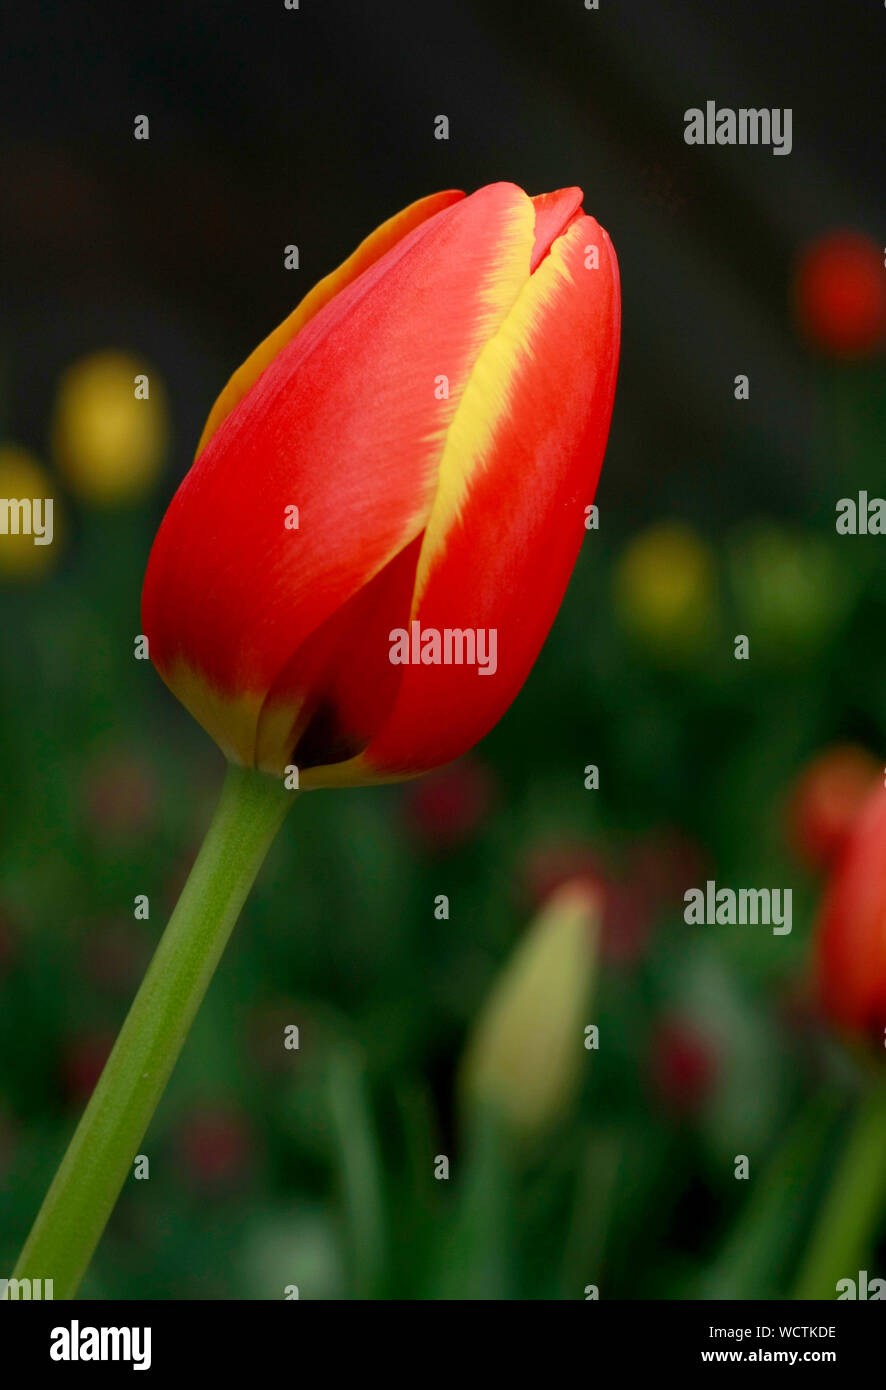 Close Up Of Red Tulip Flower Growing On Plant Stock Photo